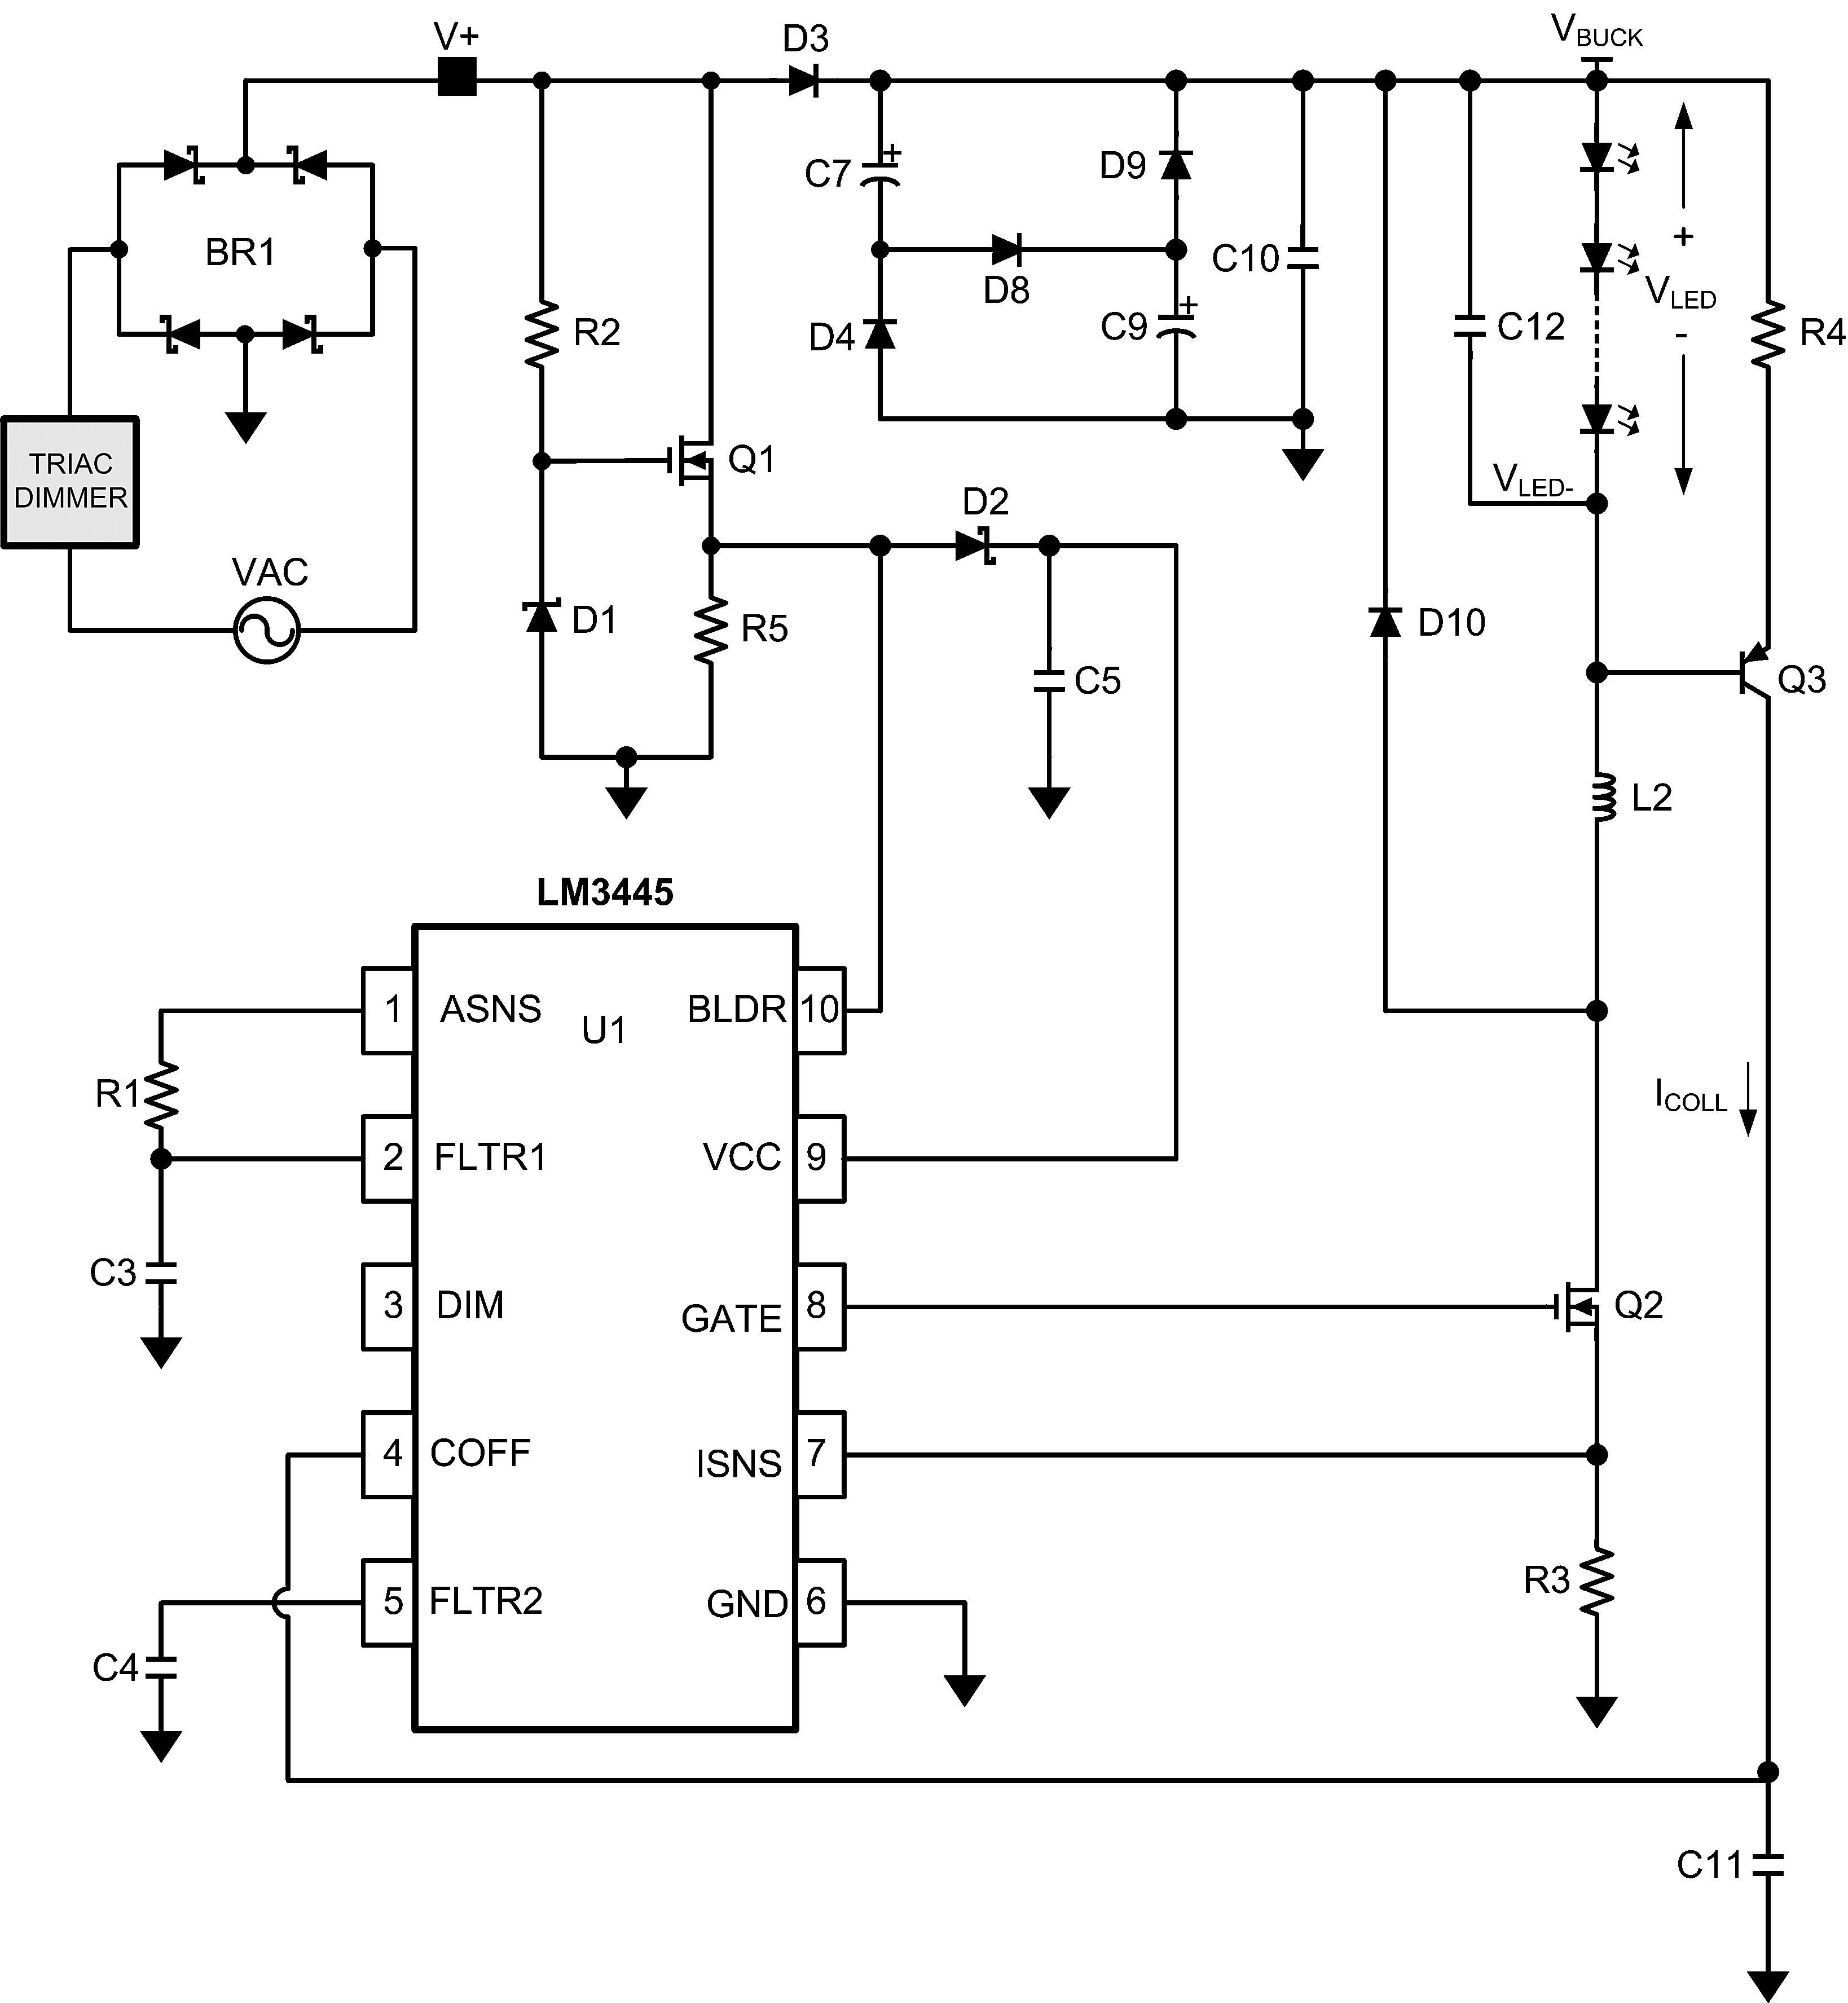 power and control circuit diagram of star delta starter images control diagram moreover touch l dimmer circuit on thyristor